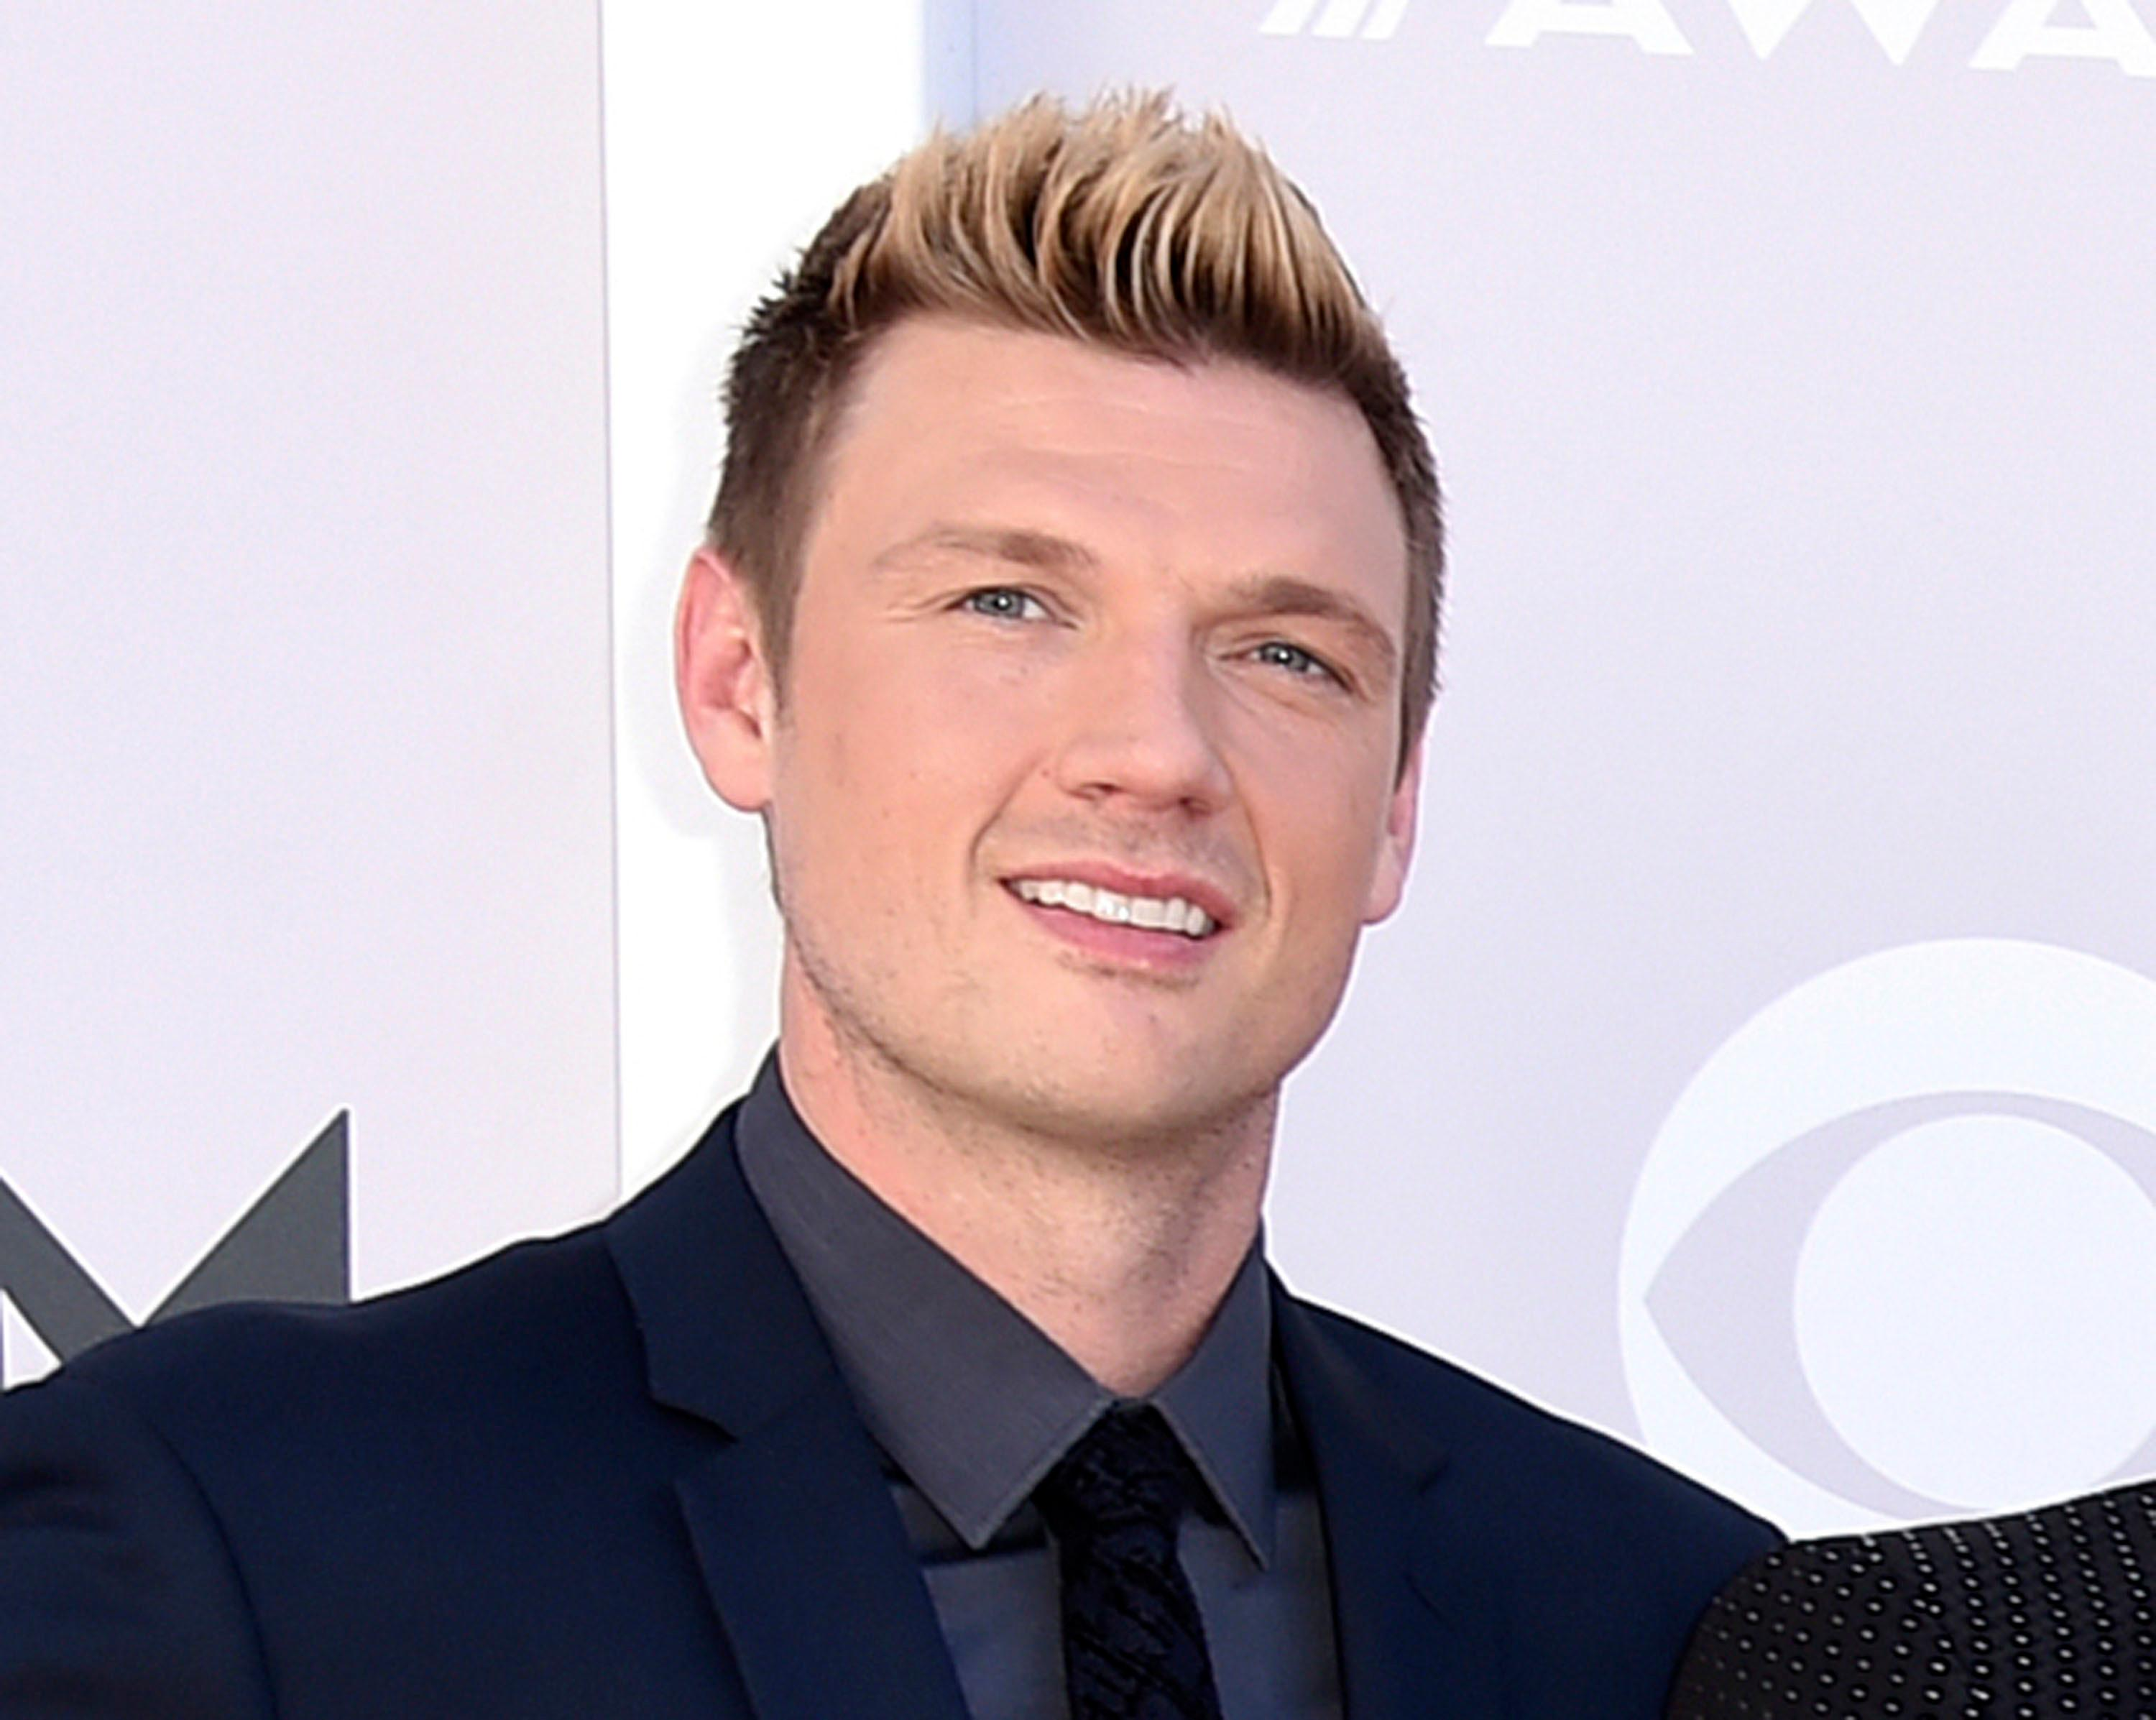 "FILE - In this April 2, 2017 photo, Nick Carter of the Backstreet Boys arrive at the 52nd annual Academy of Country Music Awards in Las Vegas. Carter says he's ""shocked and saddened"" by accusations made by a singer who said he raped her about 15 years ago. Melissa Schuman of the girl group Dream wrote in a blog post that she was ""forced to engage in an act against my will."" She said the Backstreet Boy took her virginity. (Photo by Jordan Strauss/Invision/AP, File)"